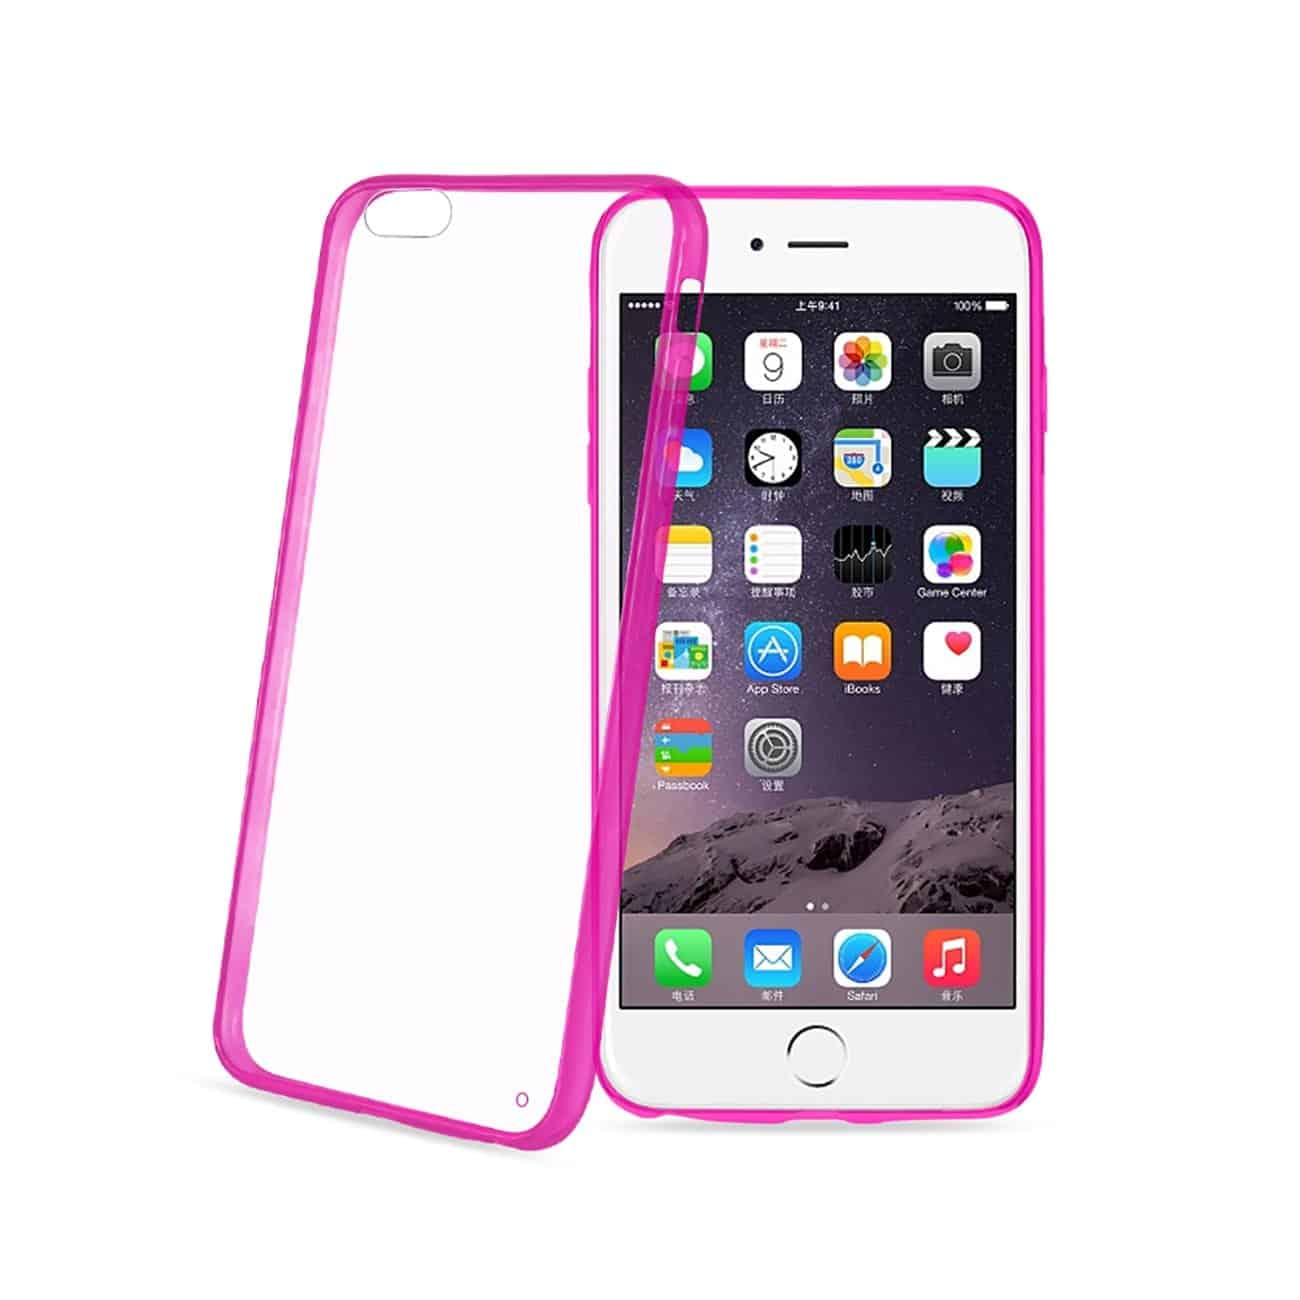 IPHONE 6 PLUS/ 6S PLUS CLEAR BACK FRAME BUMPER CASE IN PINK